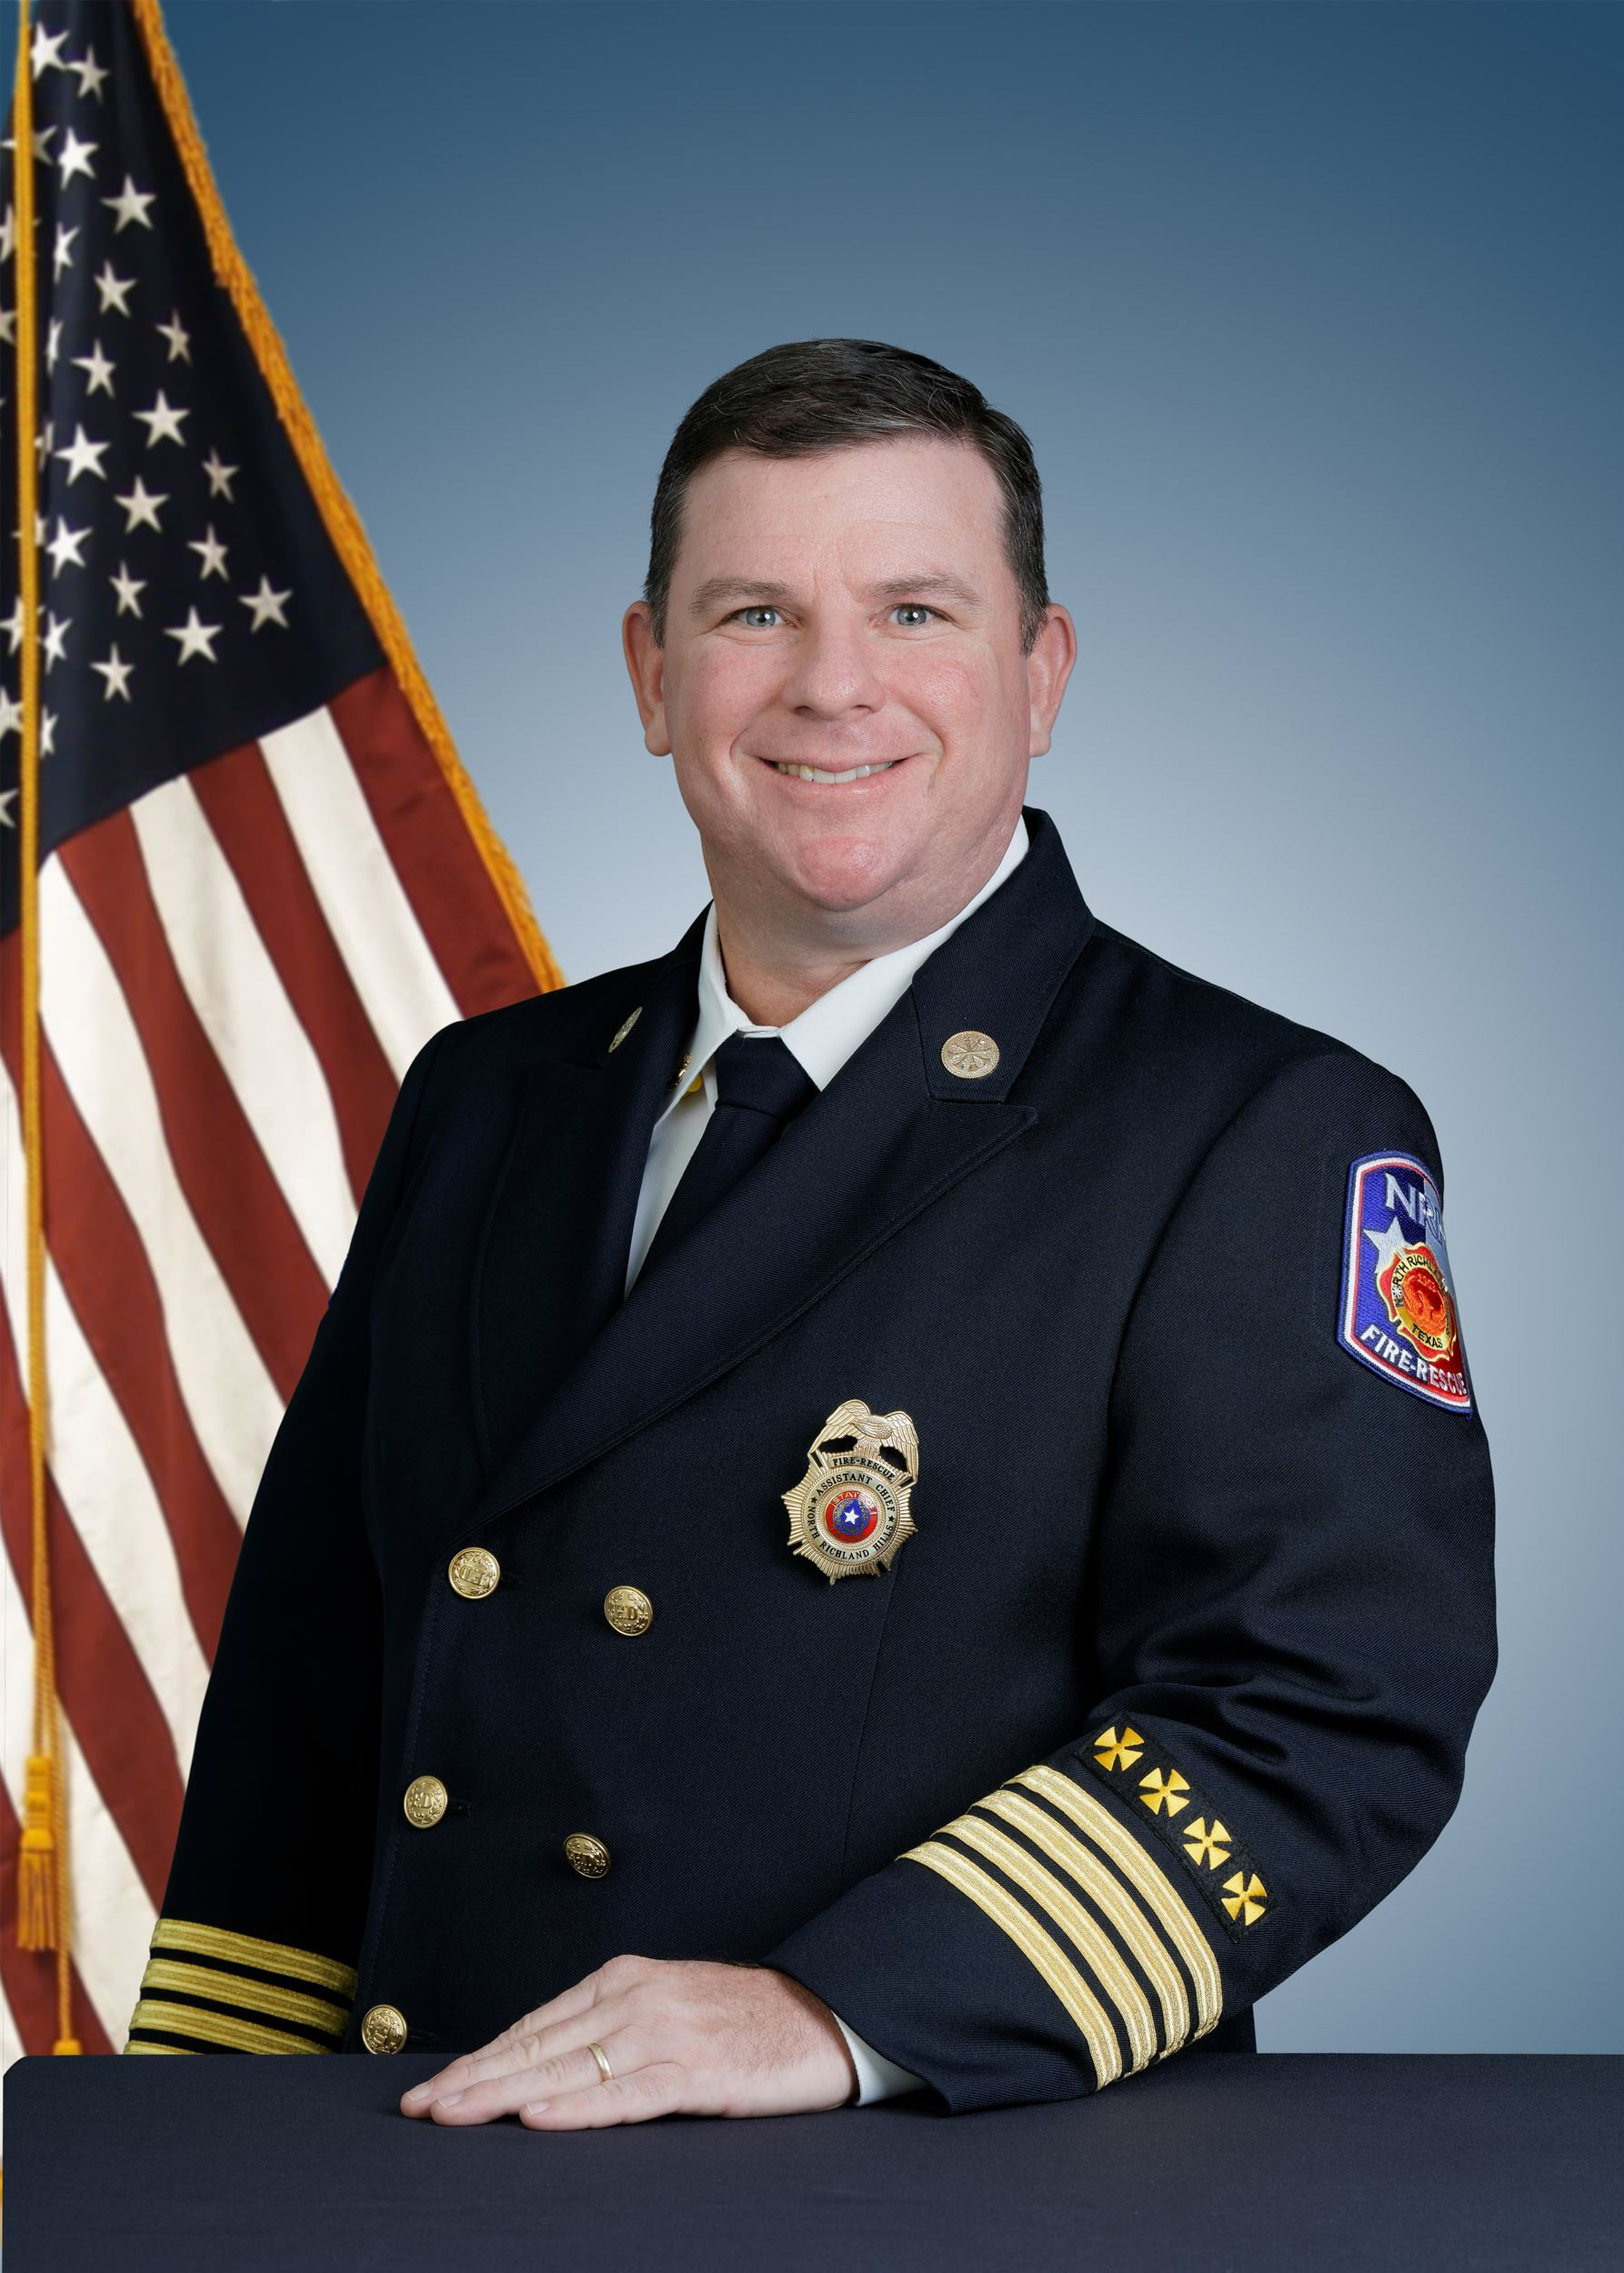 Kenneth Rawson Fire Assistant Chief